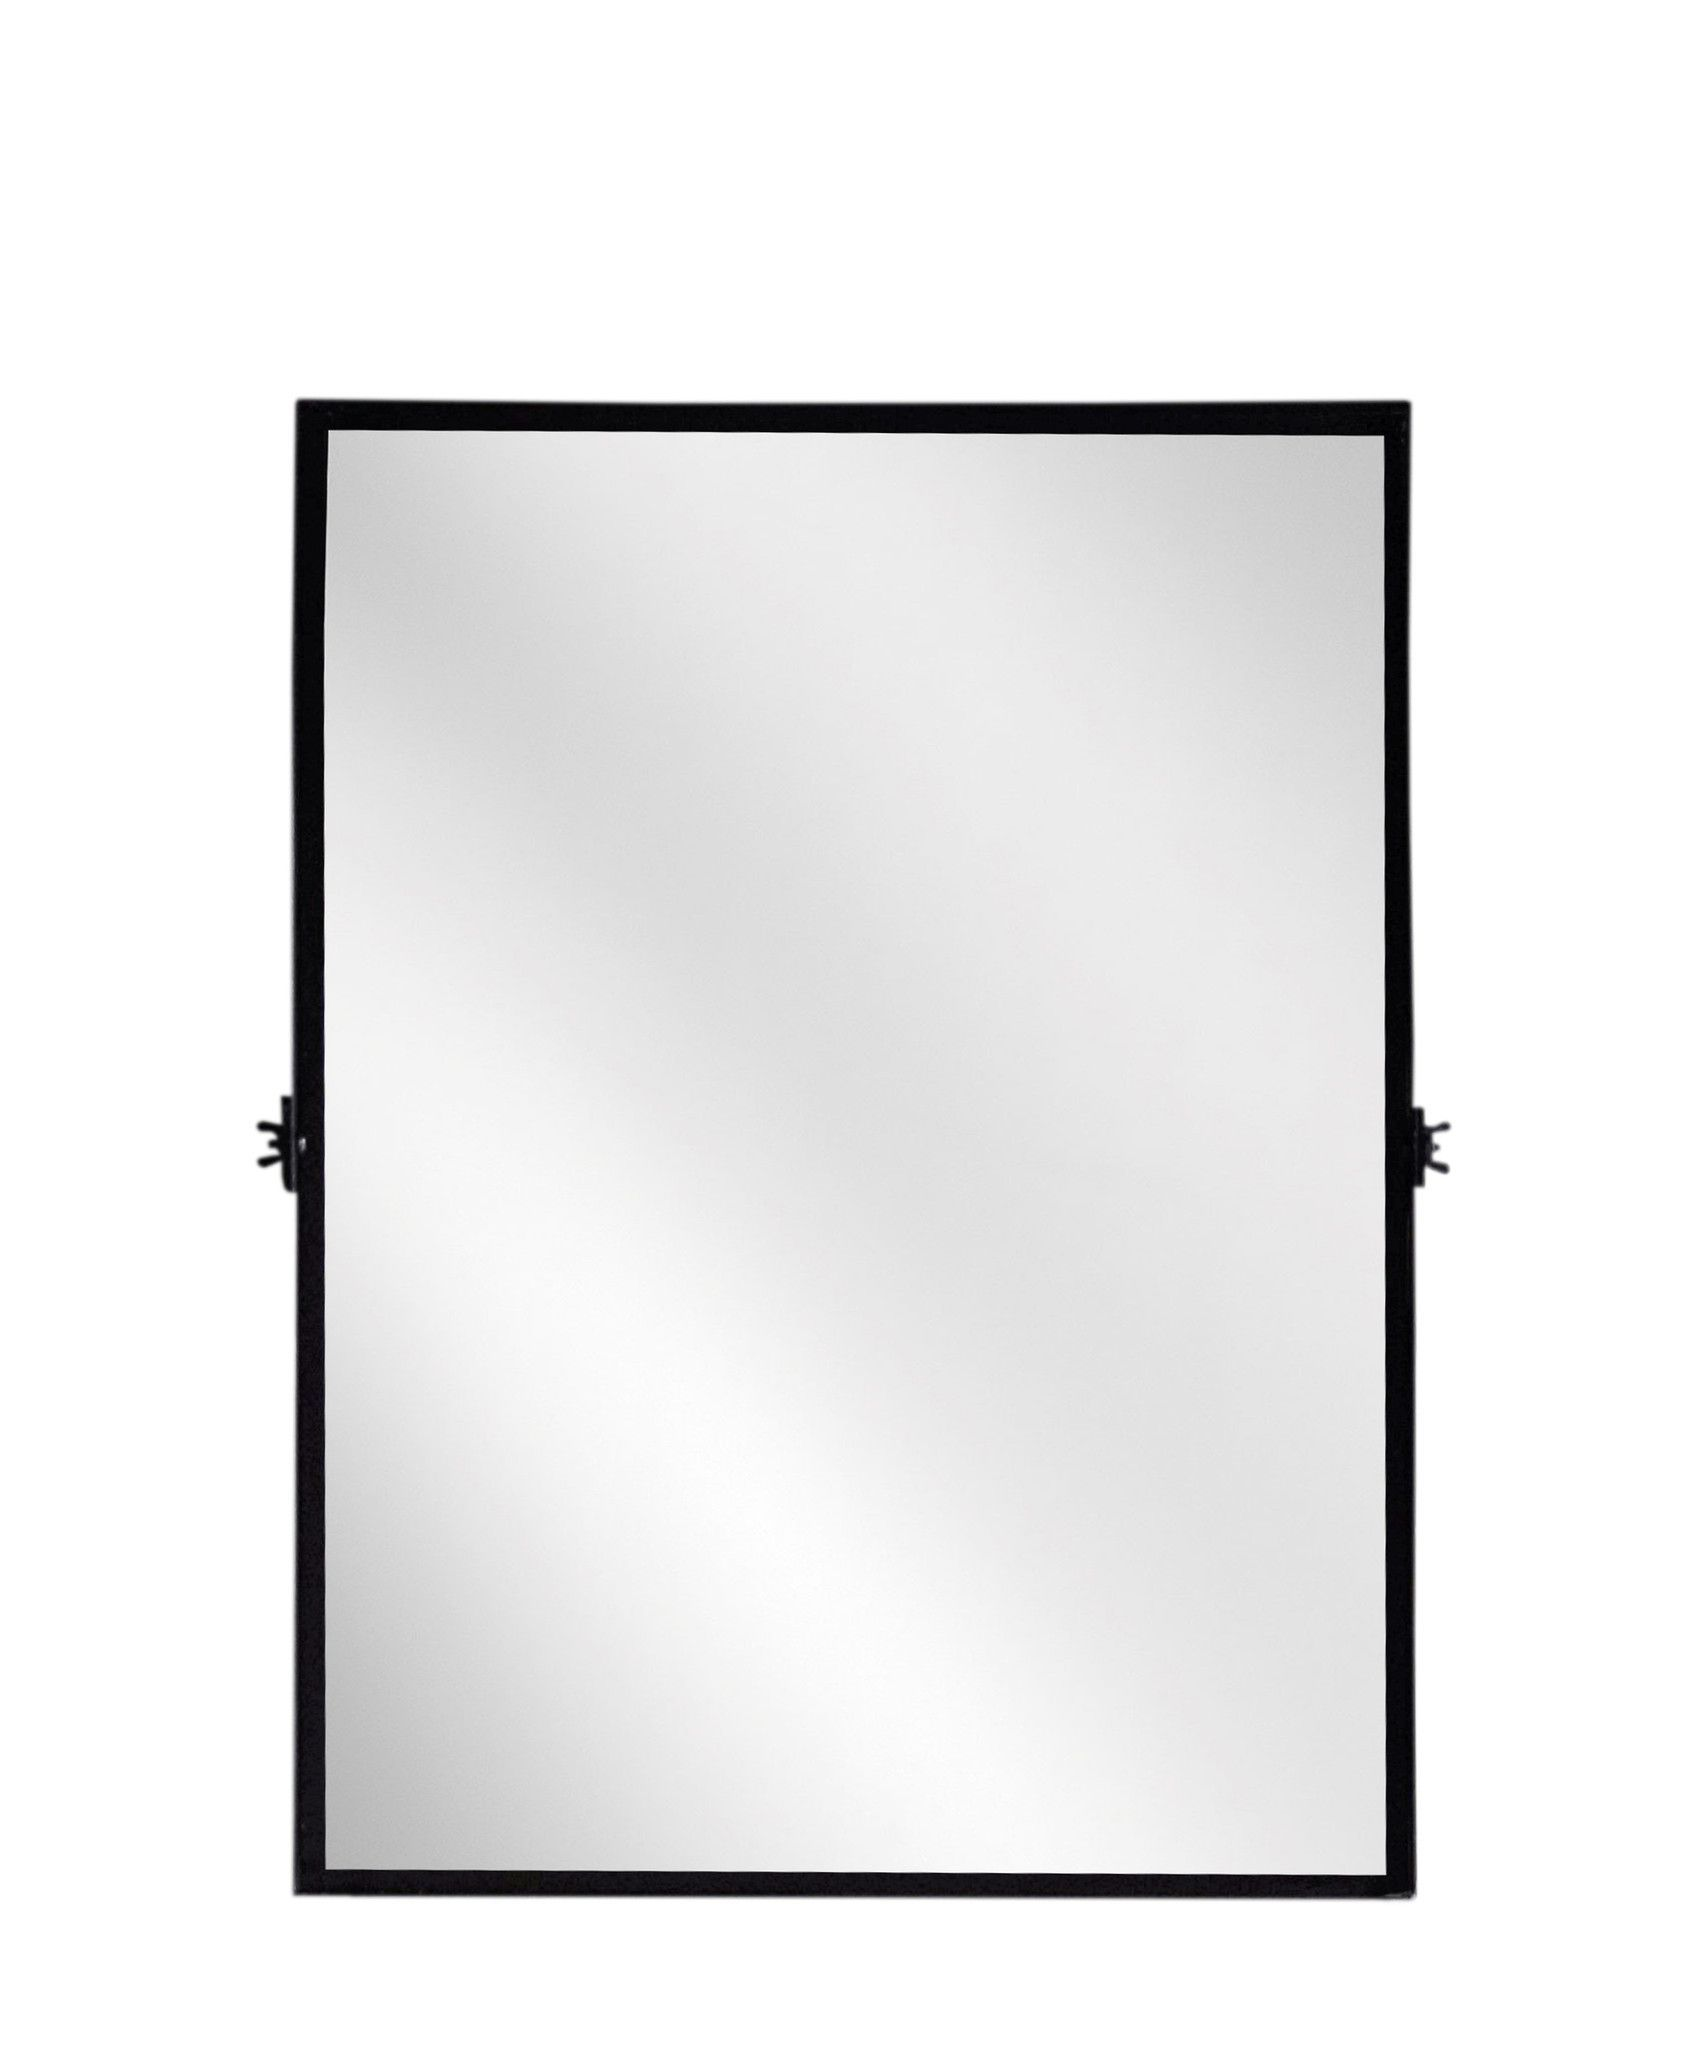 rectangular pivot mirror modern black iron frame with a matte black finish perfect